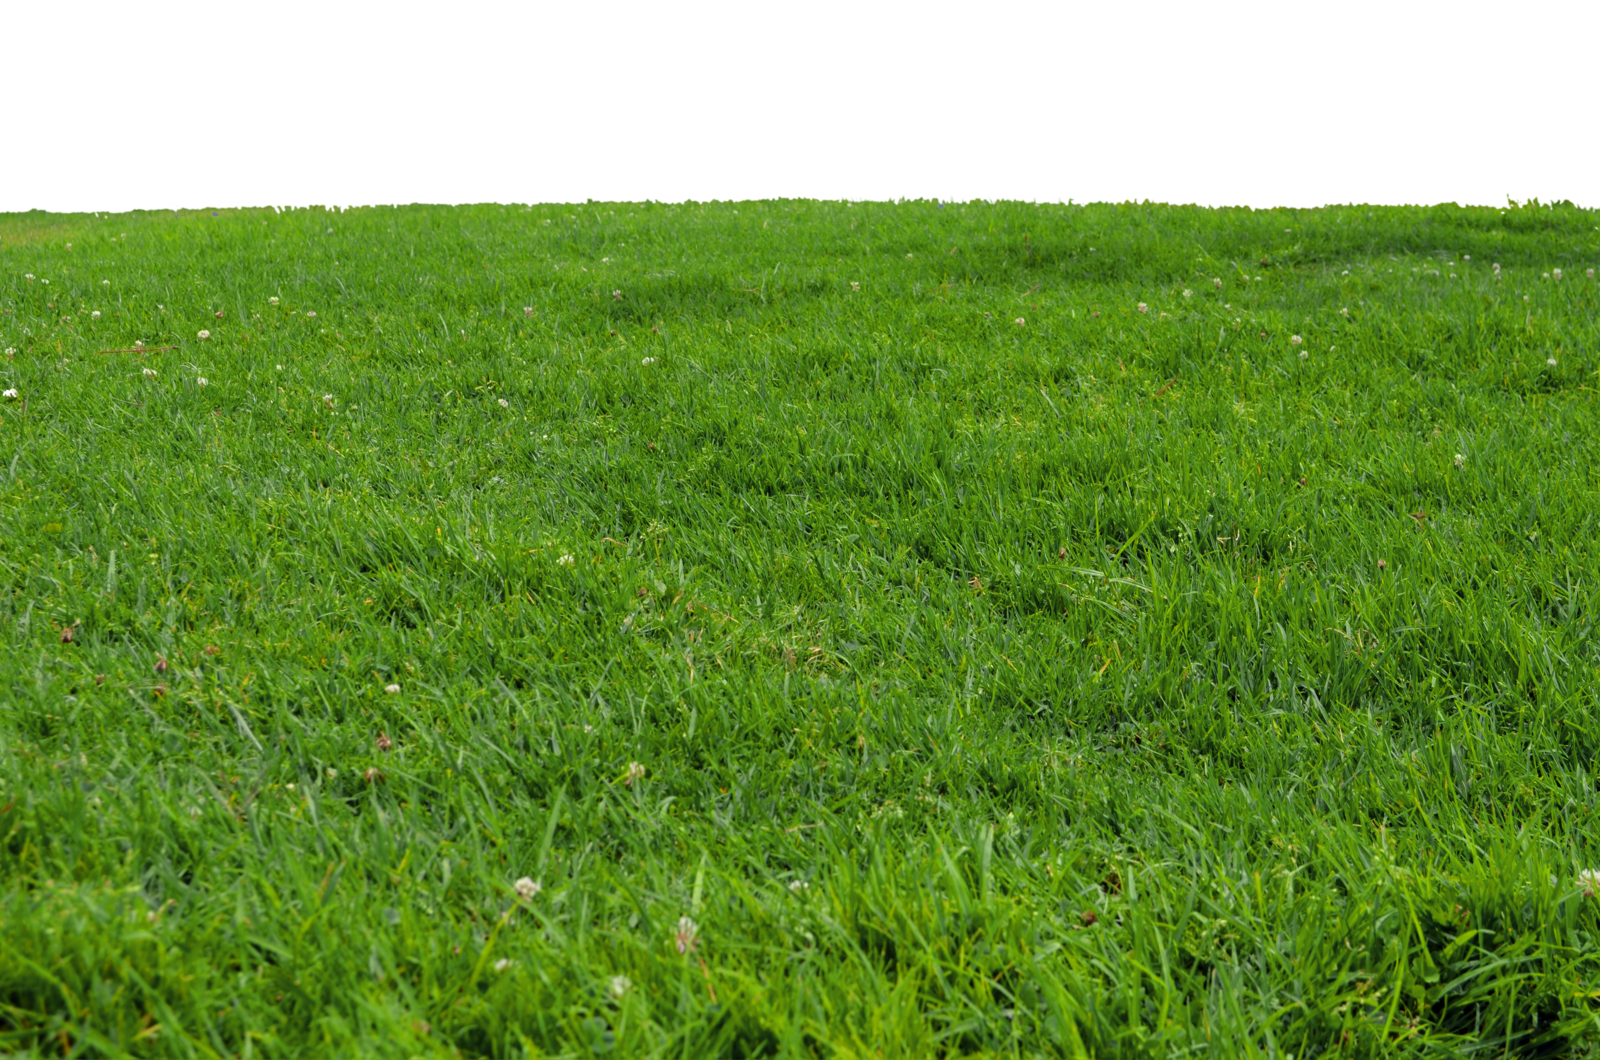 Grass photoshop png. At park stock photo